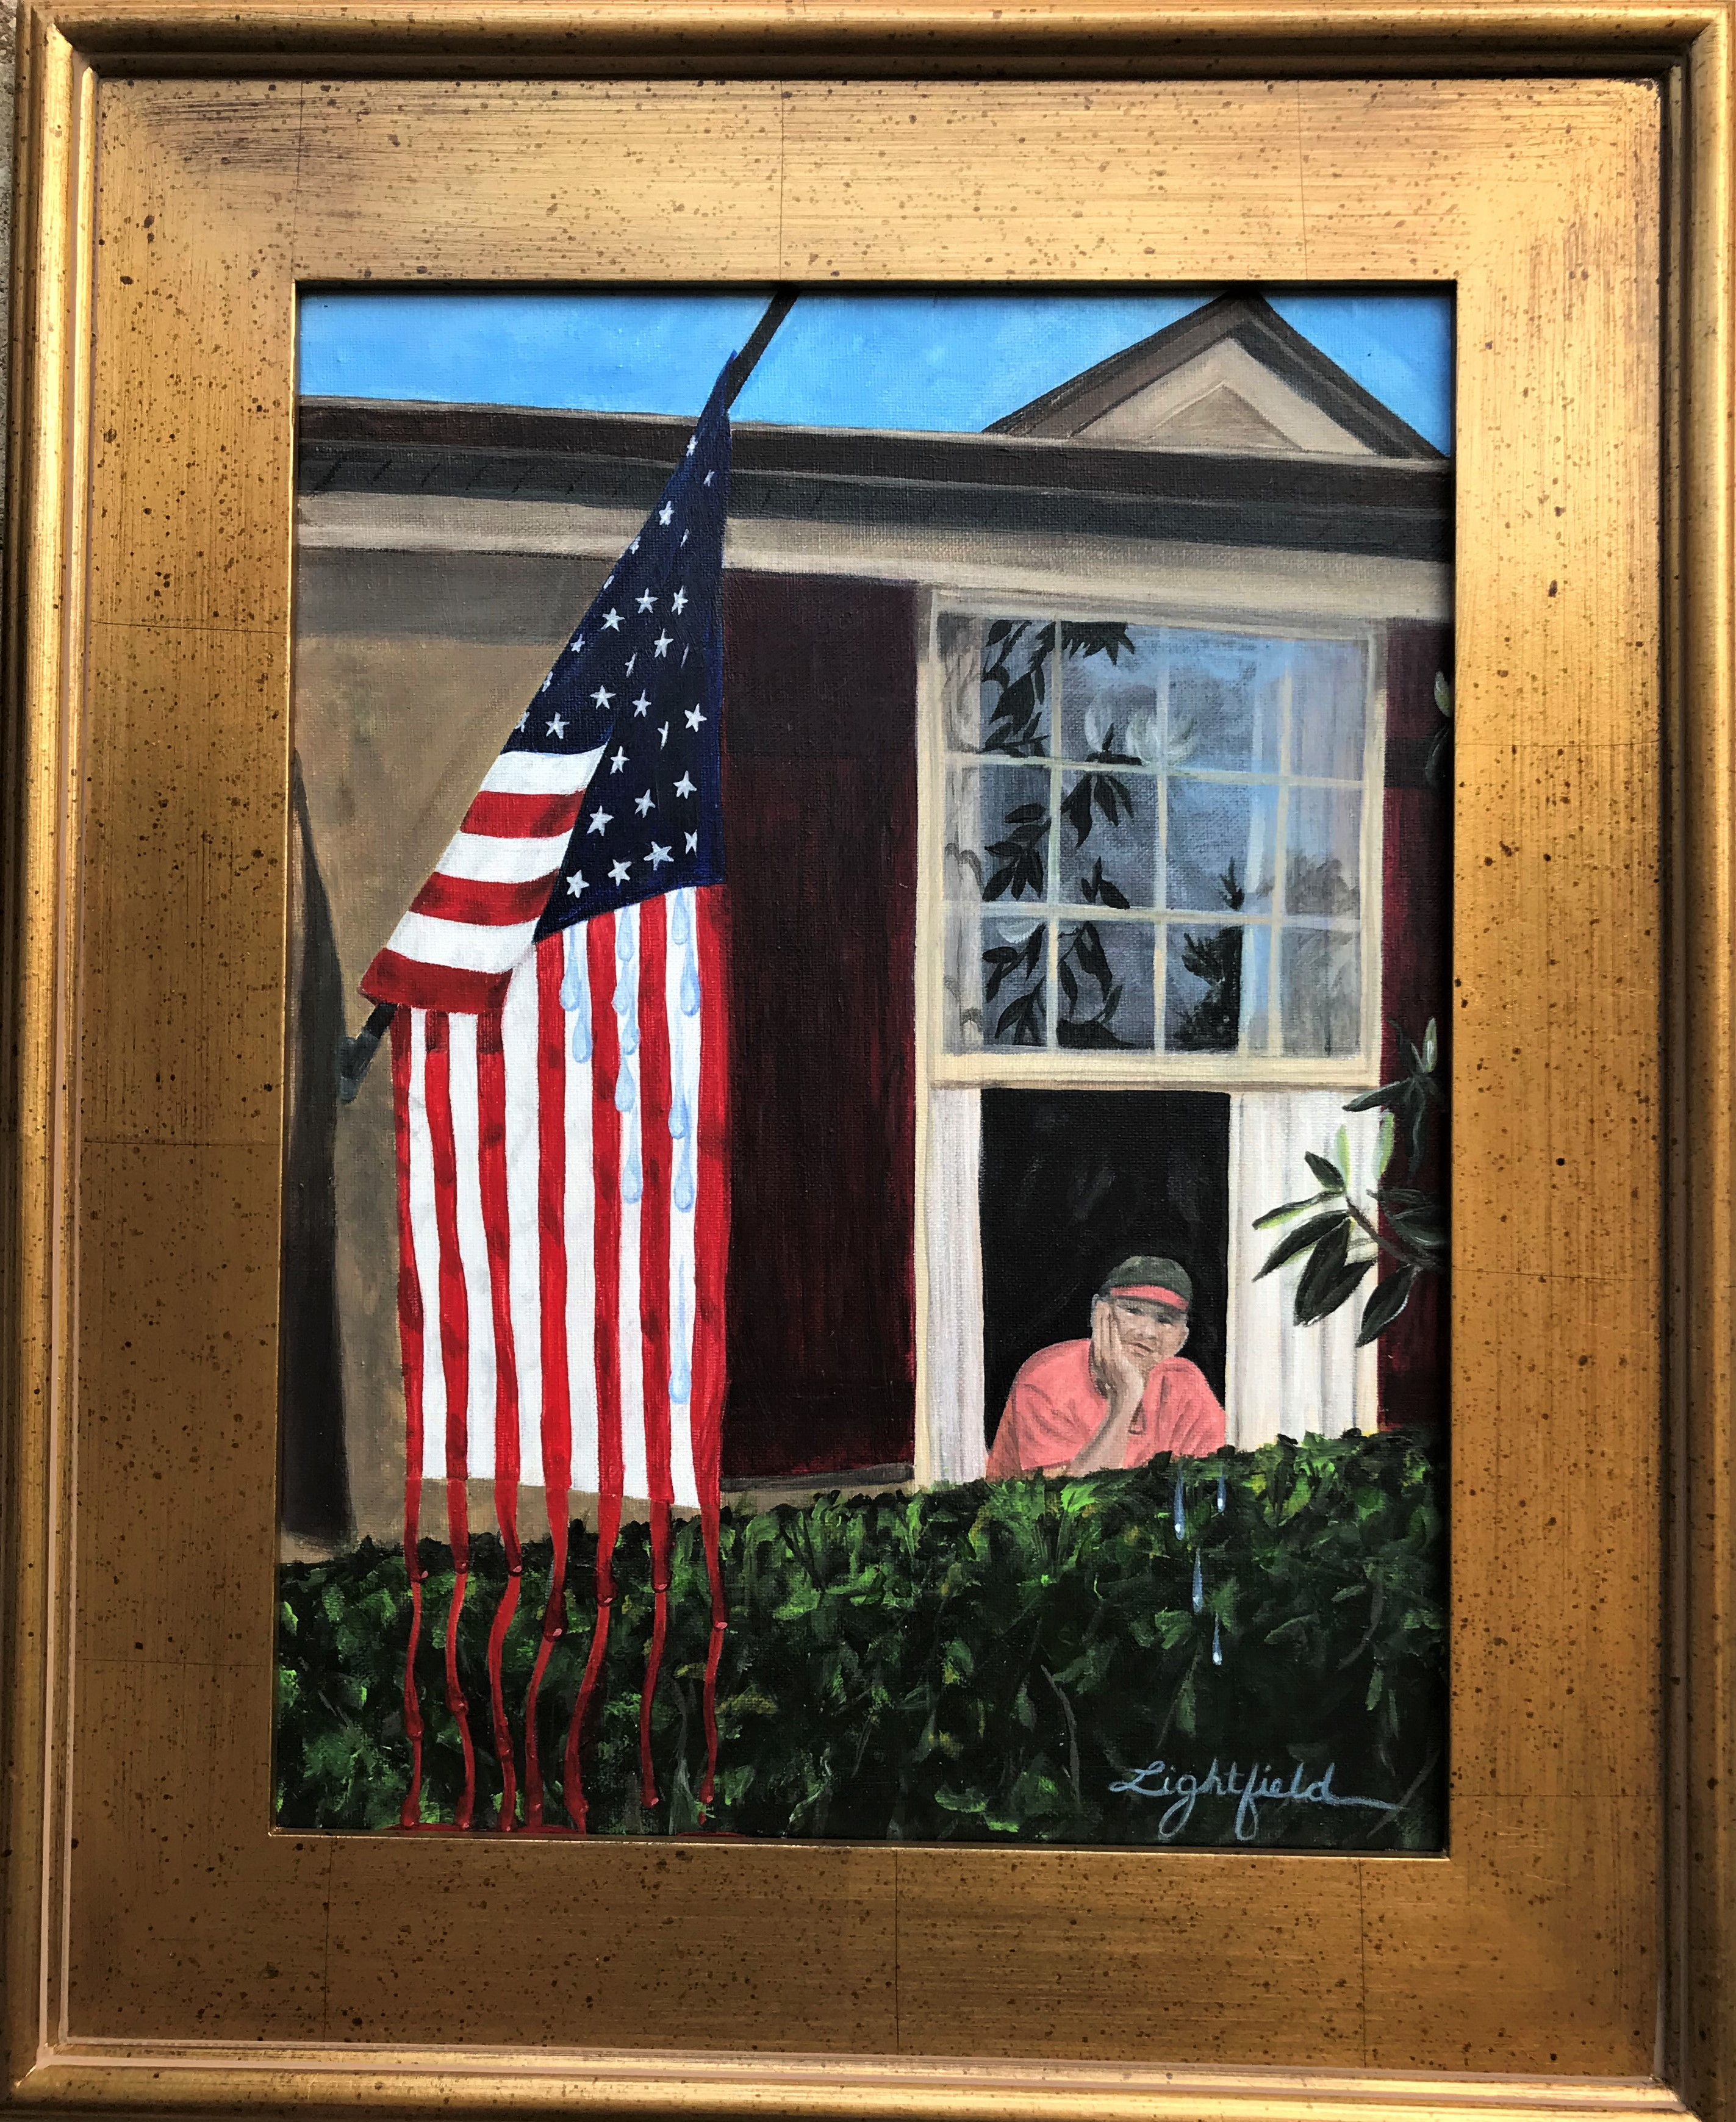 'America at Half-Mast', acrylic on canvas by Deborah Lightfield ($225) ⎼ 'This piece was created in April, in the midst of COVID. We were disheartened that we, America had not followed through with a proactive plan to combat this pandemic. And, here we are with other 200,000 dead loved ones just in the United States. We fly our flag at half-mast because we are in mourning every day. In my painting I have my husband looking out the window in a reflective state. Usually I paint with joy to hopefully convey that feeling. However, this piece was painted with sadness, although, I want to convey hope. I will always fly the American Flag with hope.'